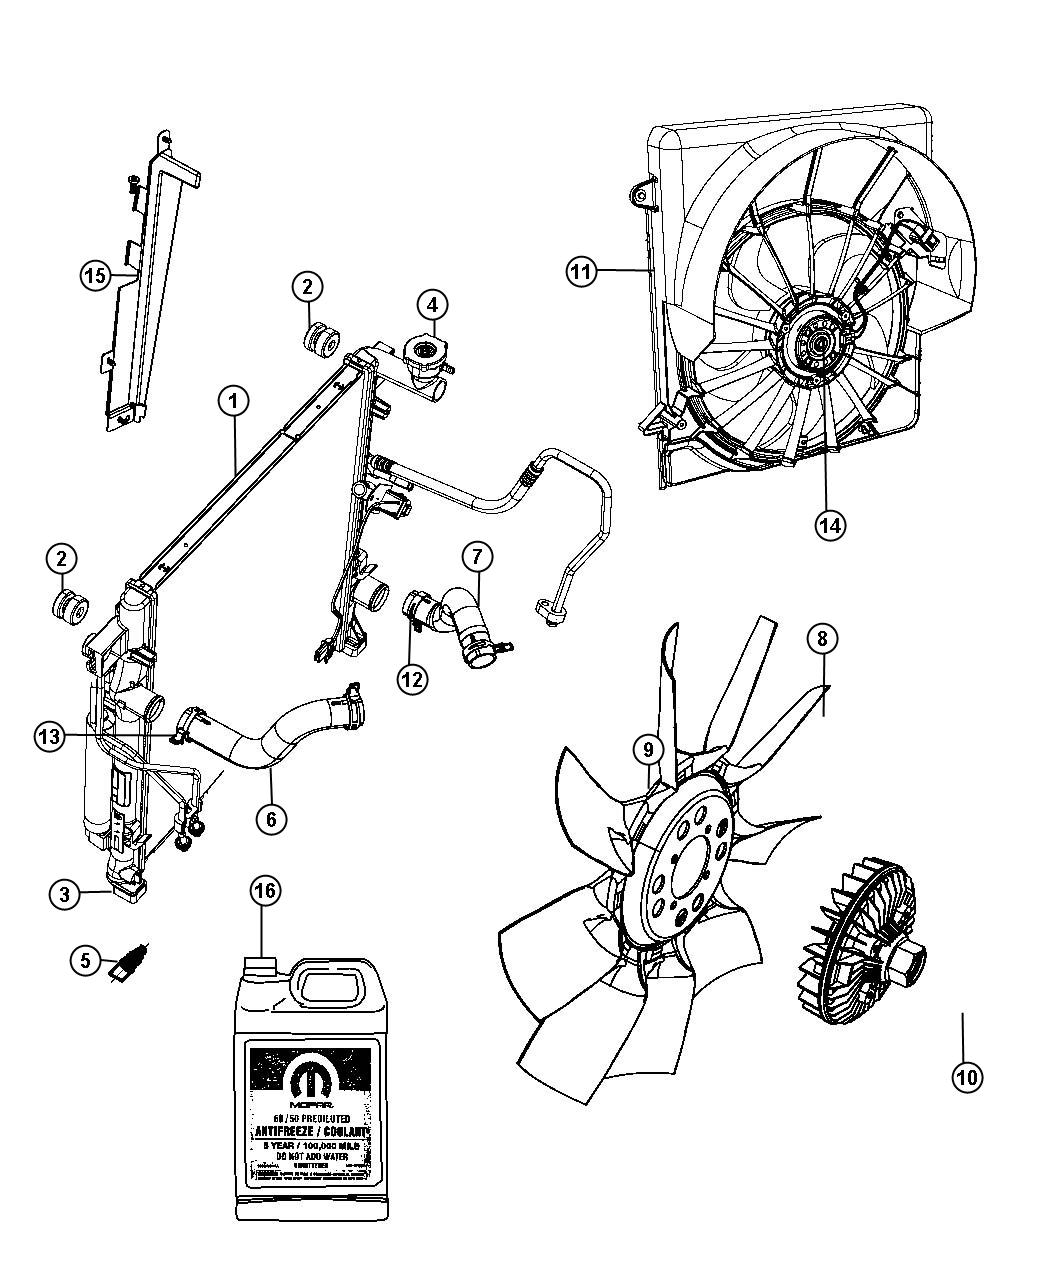 tags: #2002 jeep liberty wiring schematic#2004 jeep liberty wiring diagram#2003  jeep wrangler wiring schematic#jeep electrical diagram#2006 jeep liberty